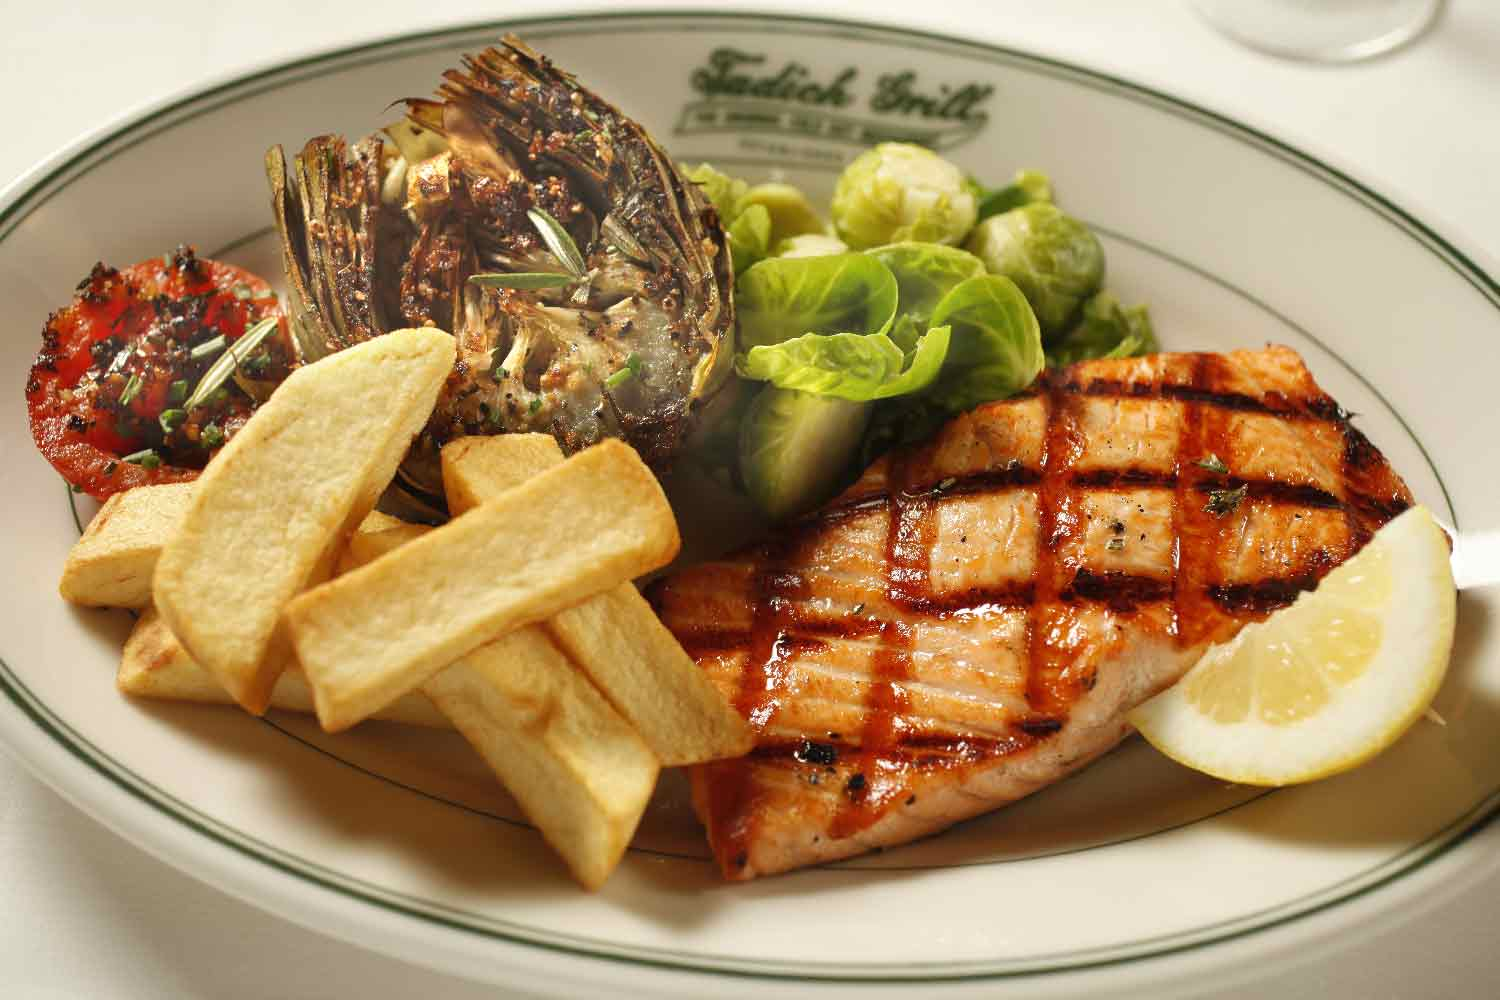 Mesquite Broiled Salmon